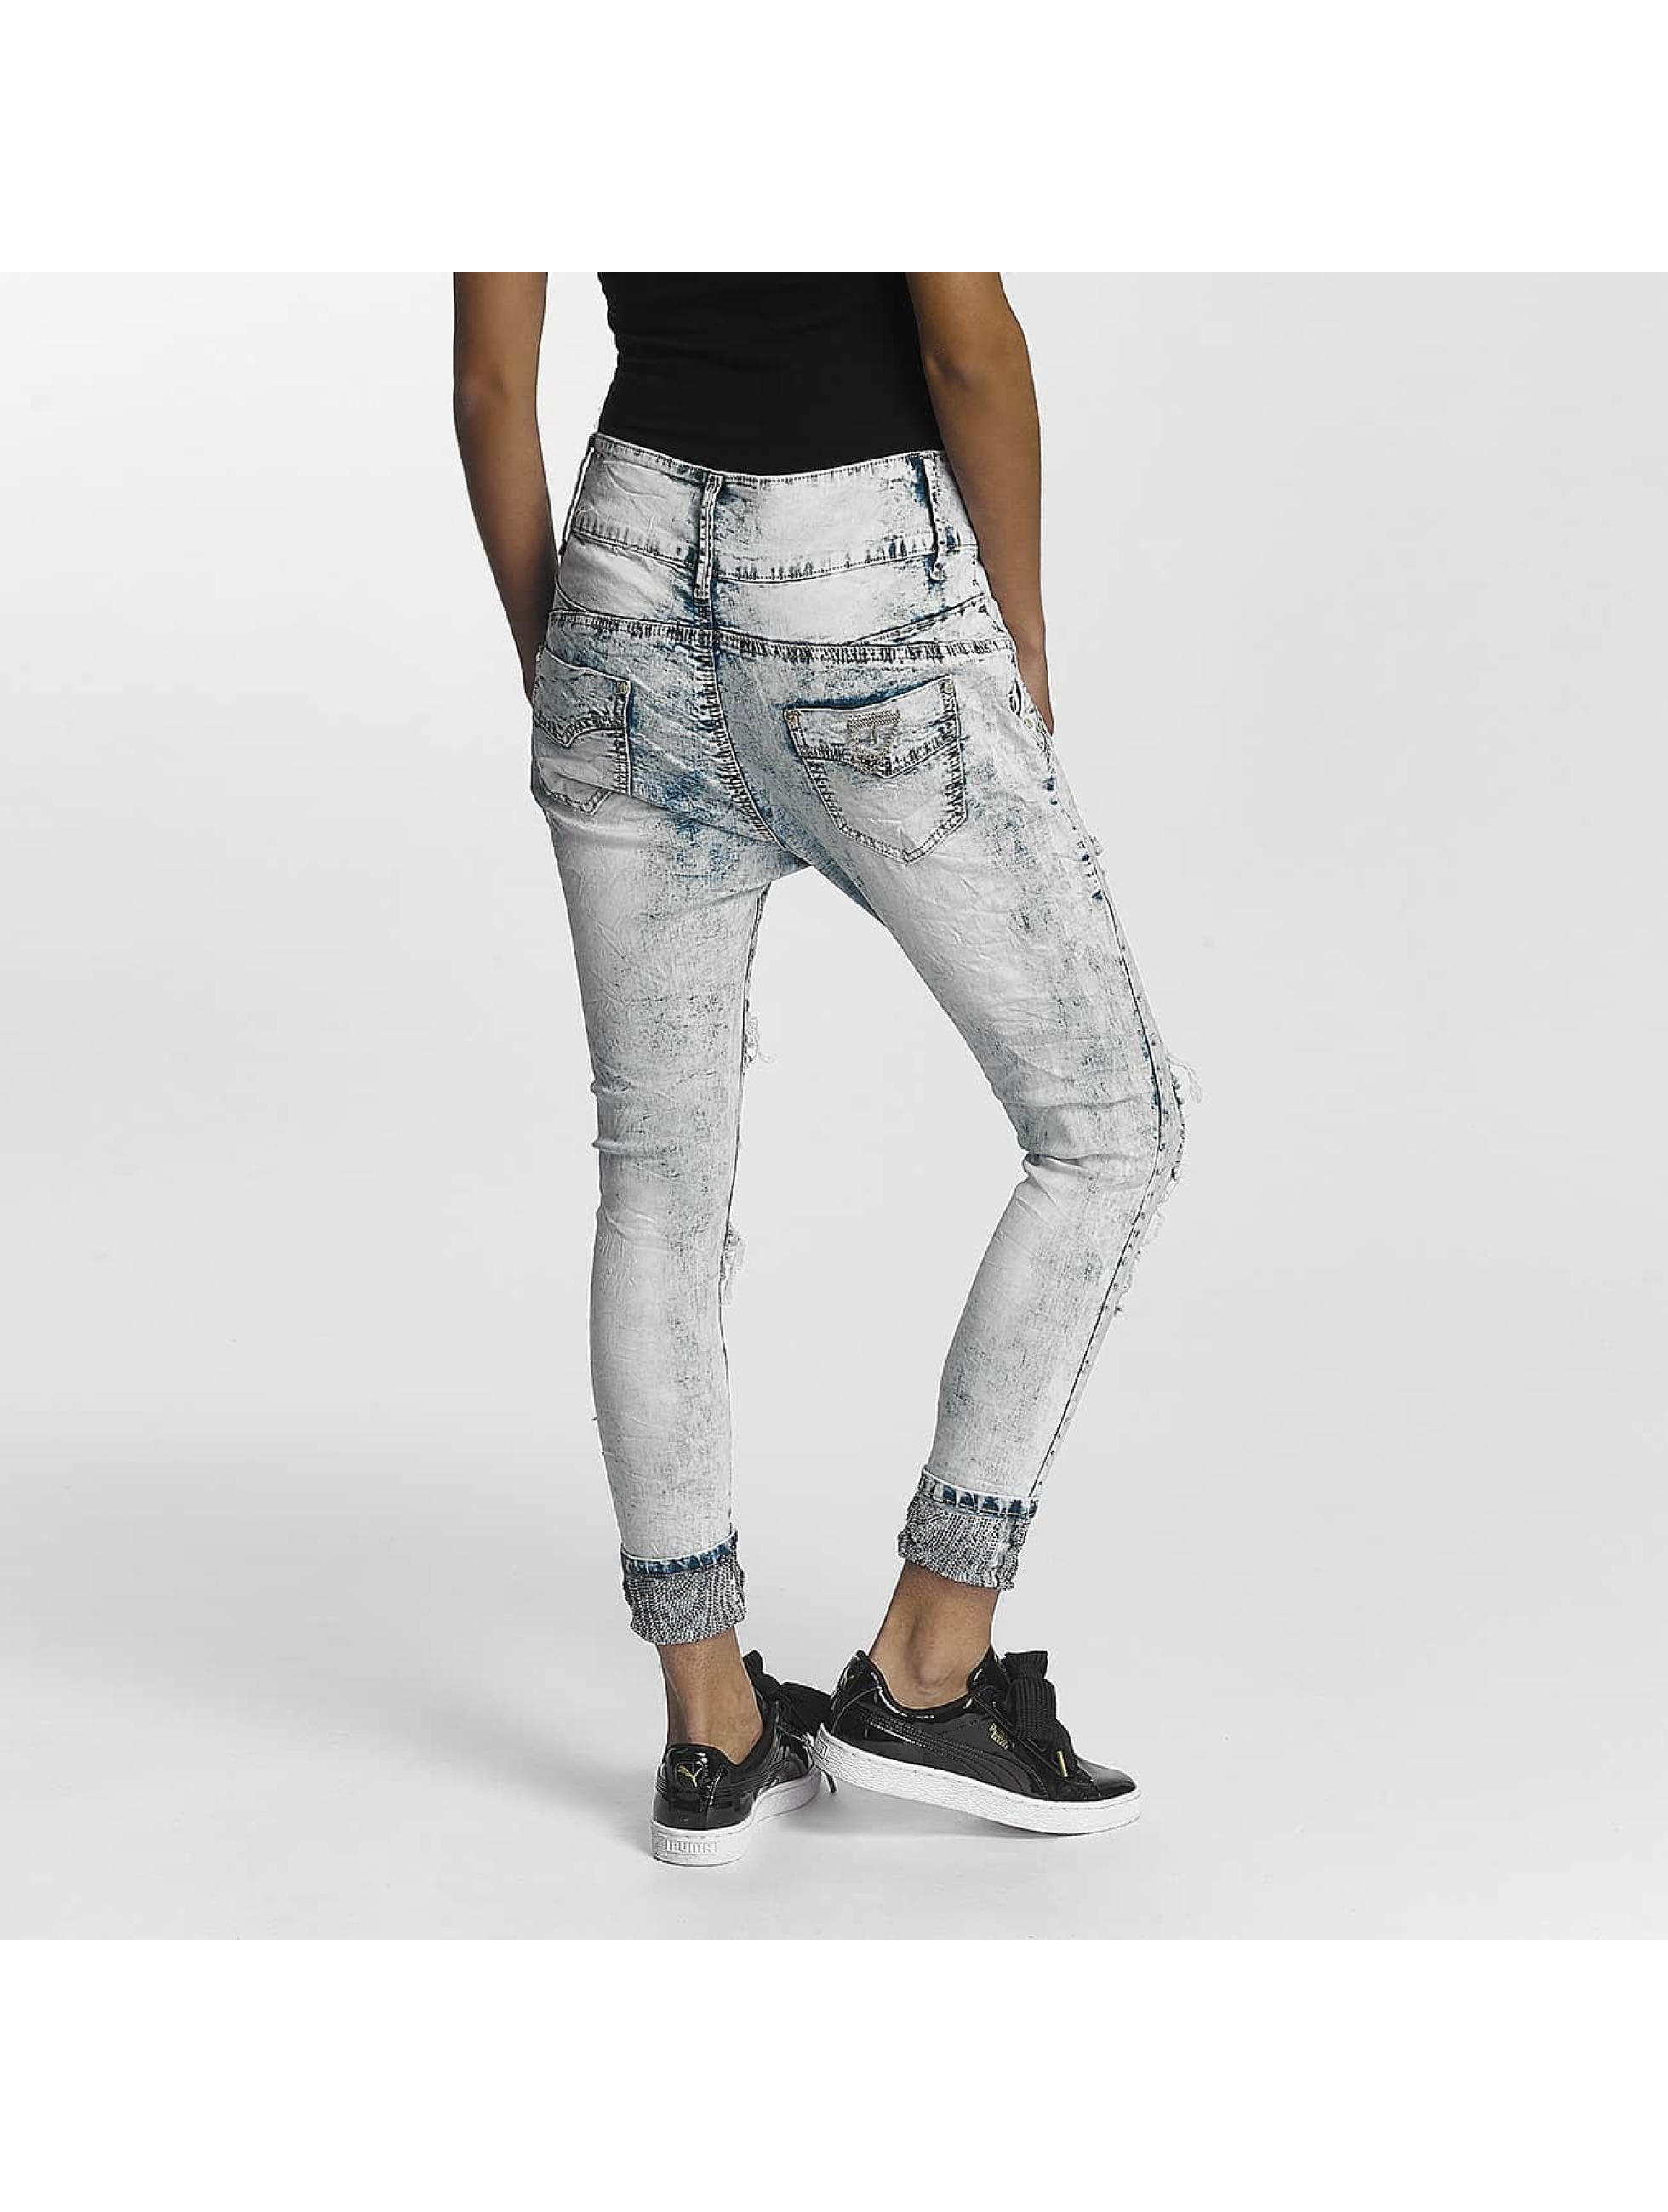 Leg Kings Dżinsy boyfriend Original Denim niebieski